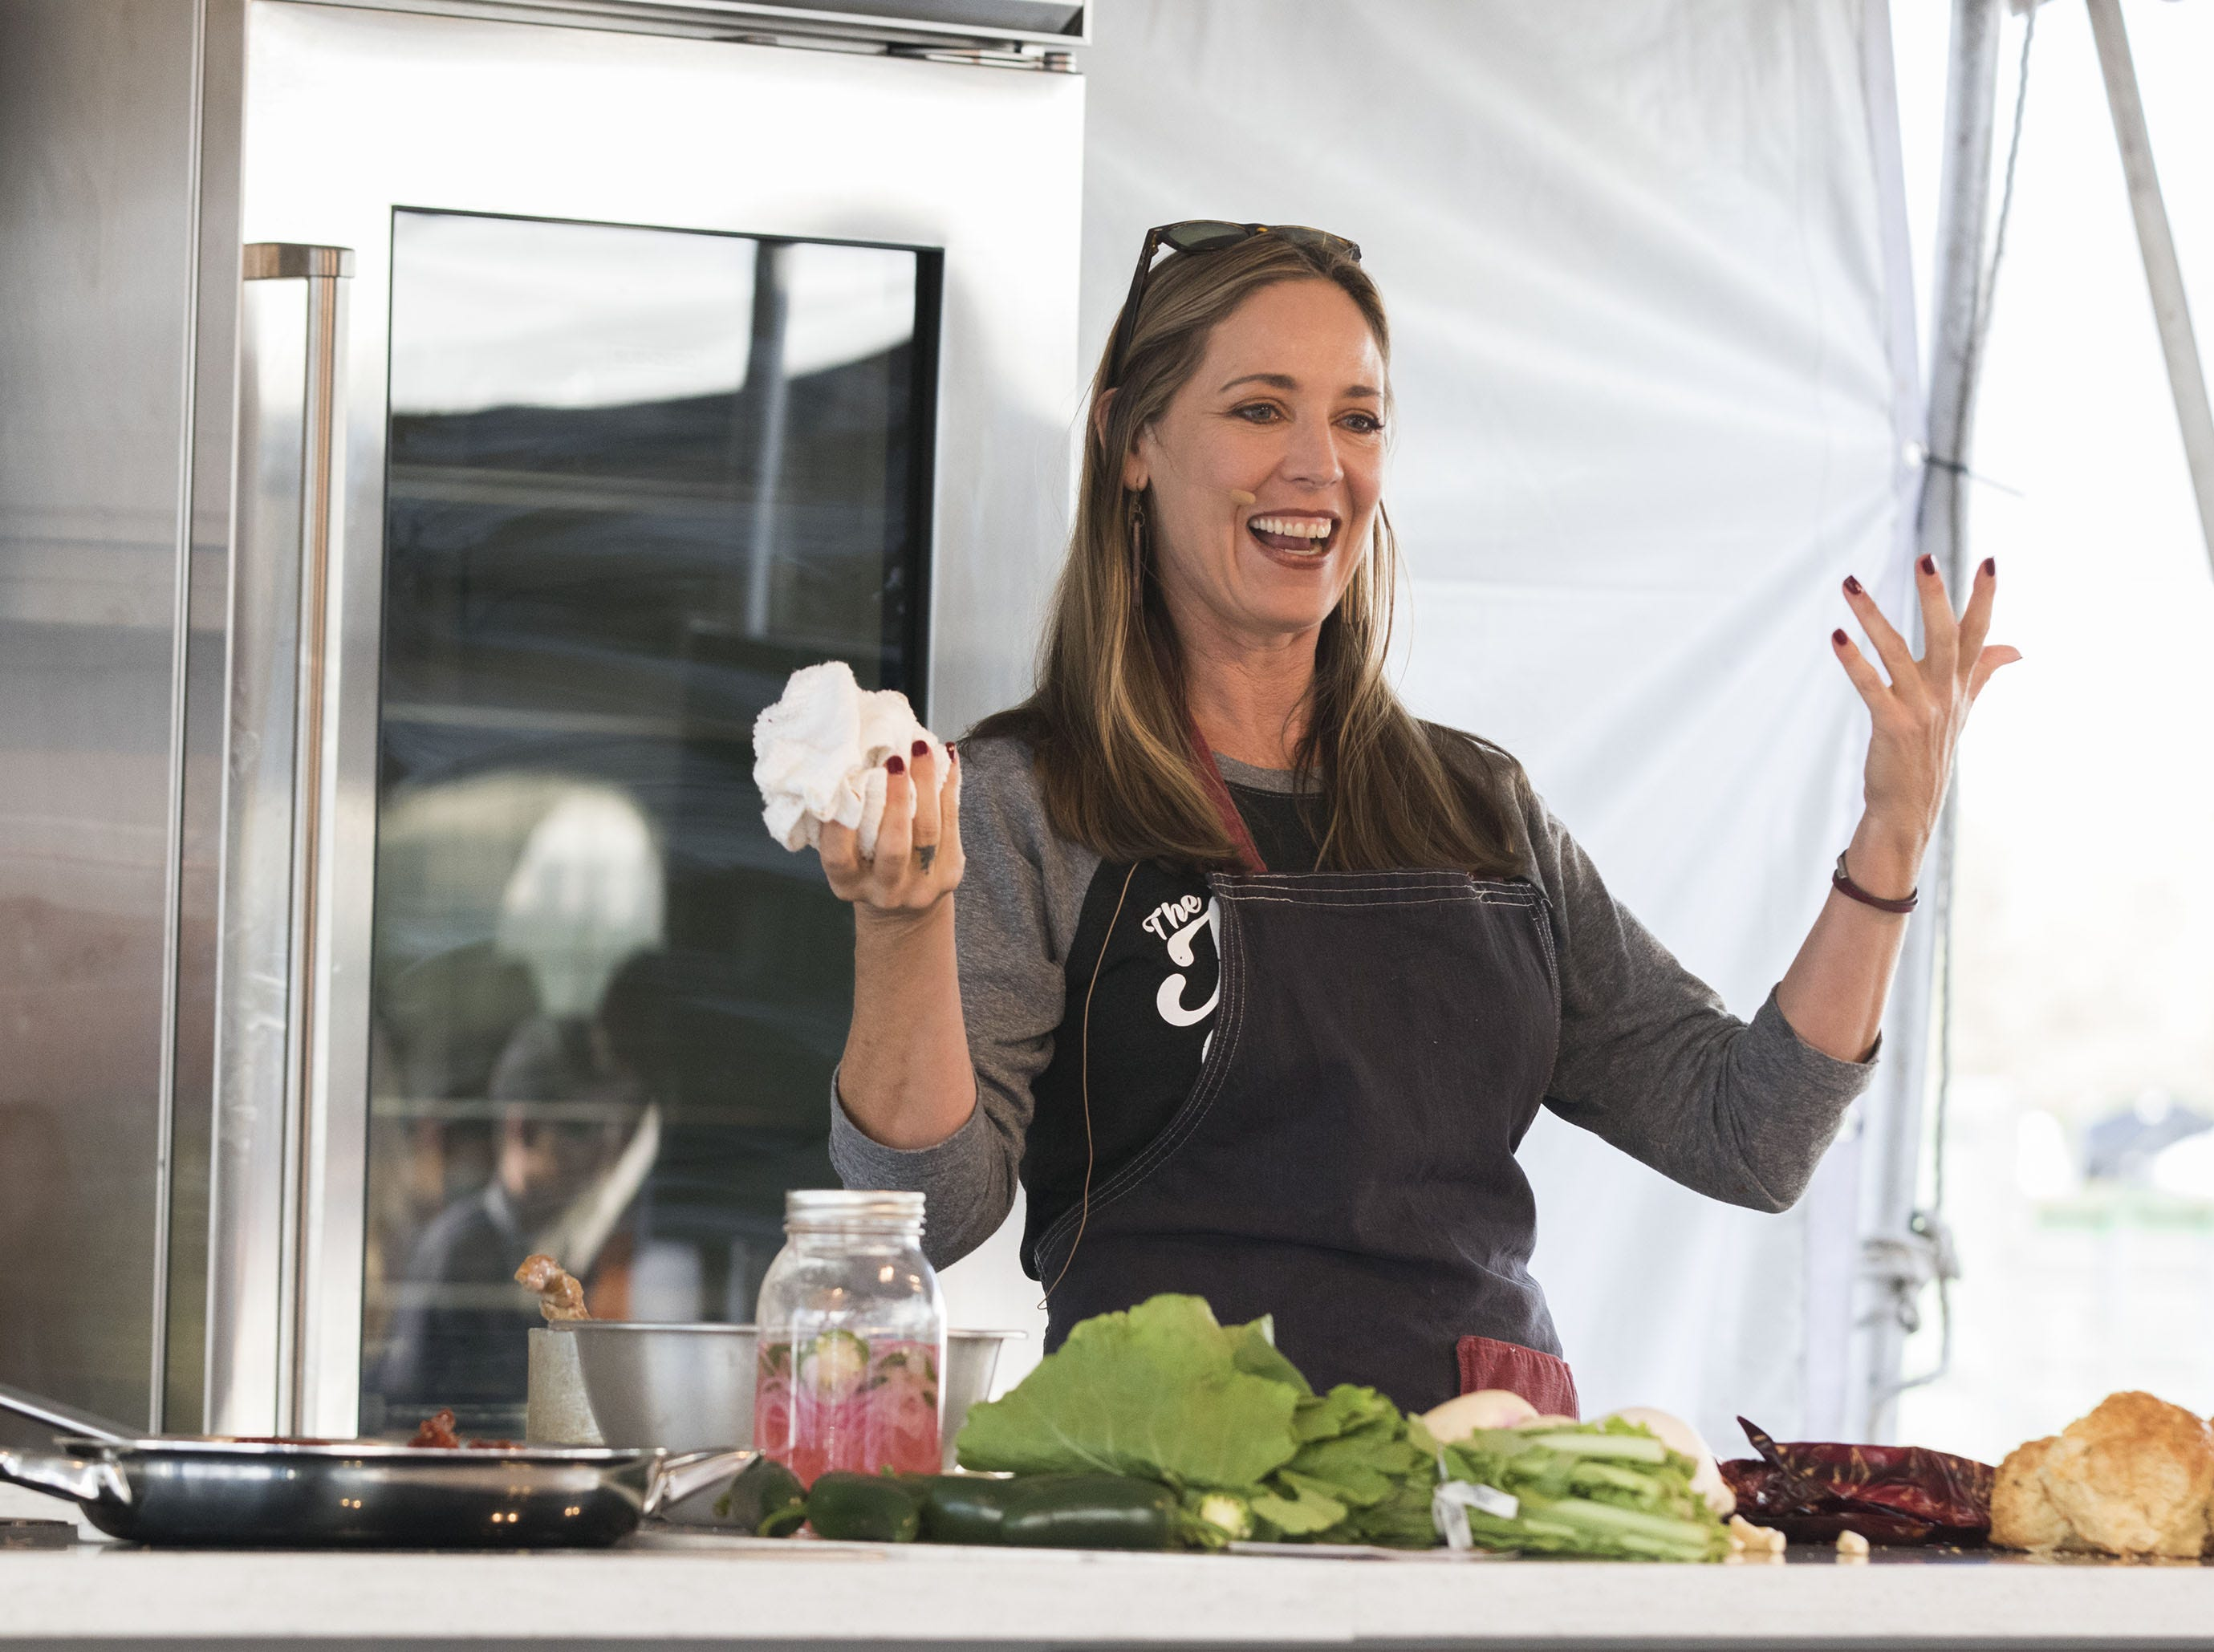 Jennifer Caraway of Joy Bus has fun with fans as she demonstrates her cooking style during the azcentral Wine & Food Experience at WestWorld of Scottsdale, Sunday, Nov. 4, 2018.